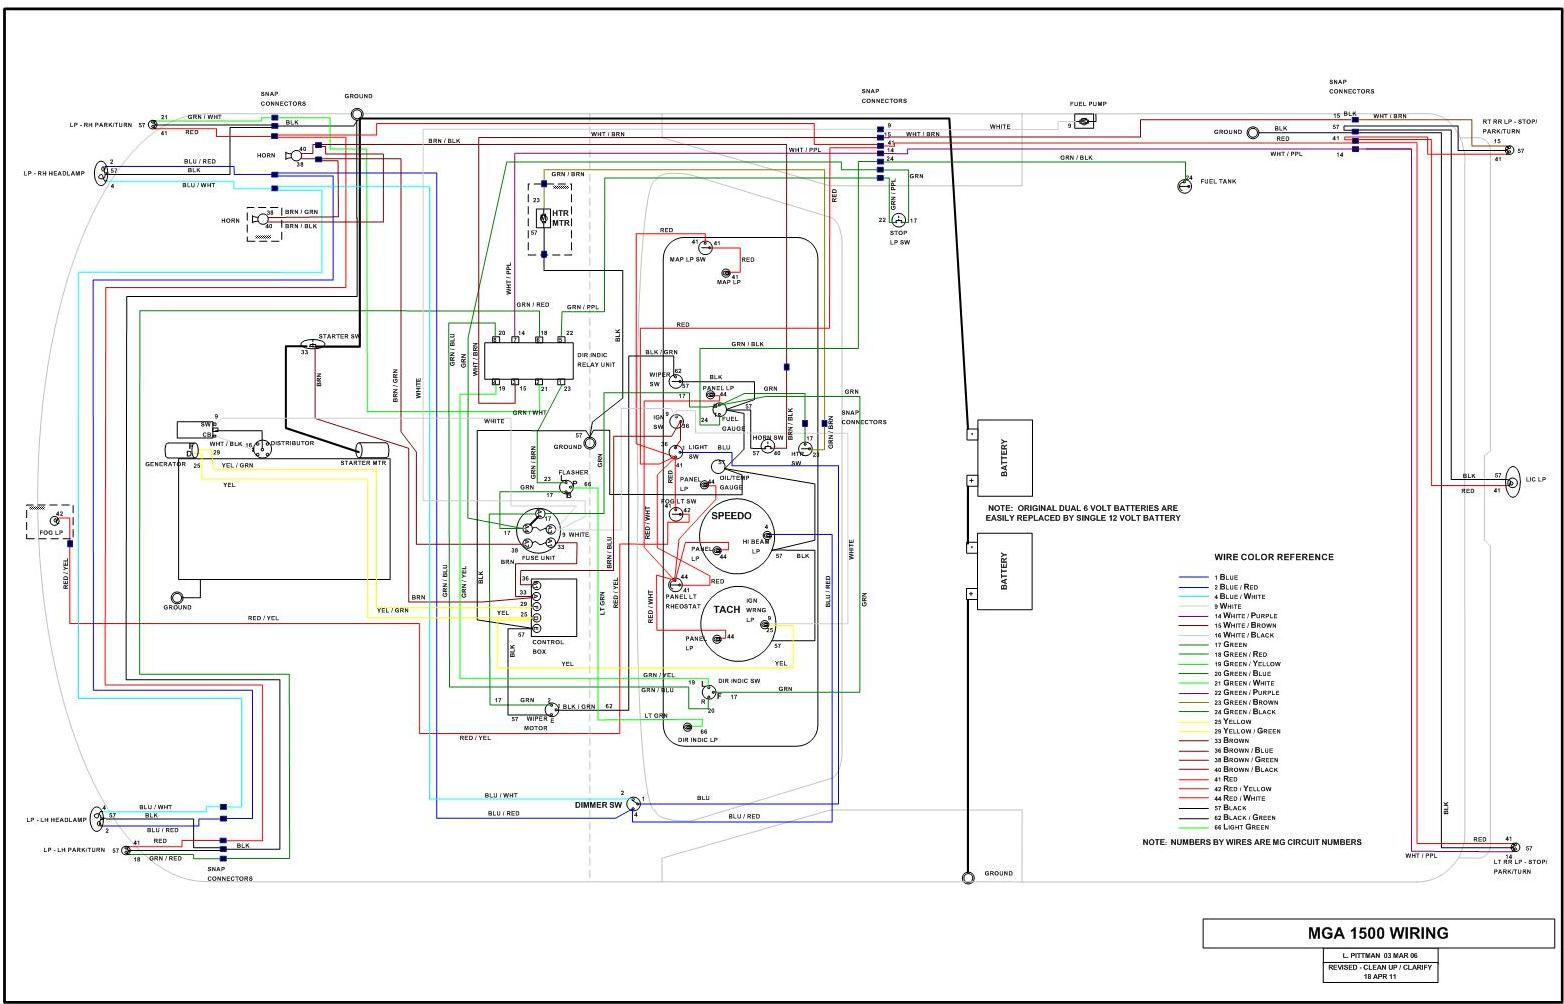 hight resolution of mga subassembly wiring wiring schematics for cars mga  1500 wiring diagram